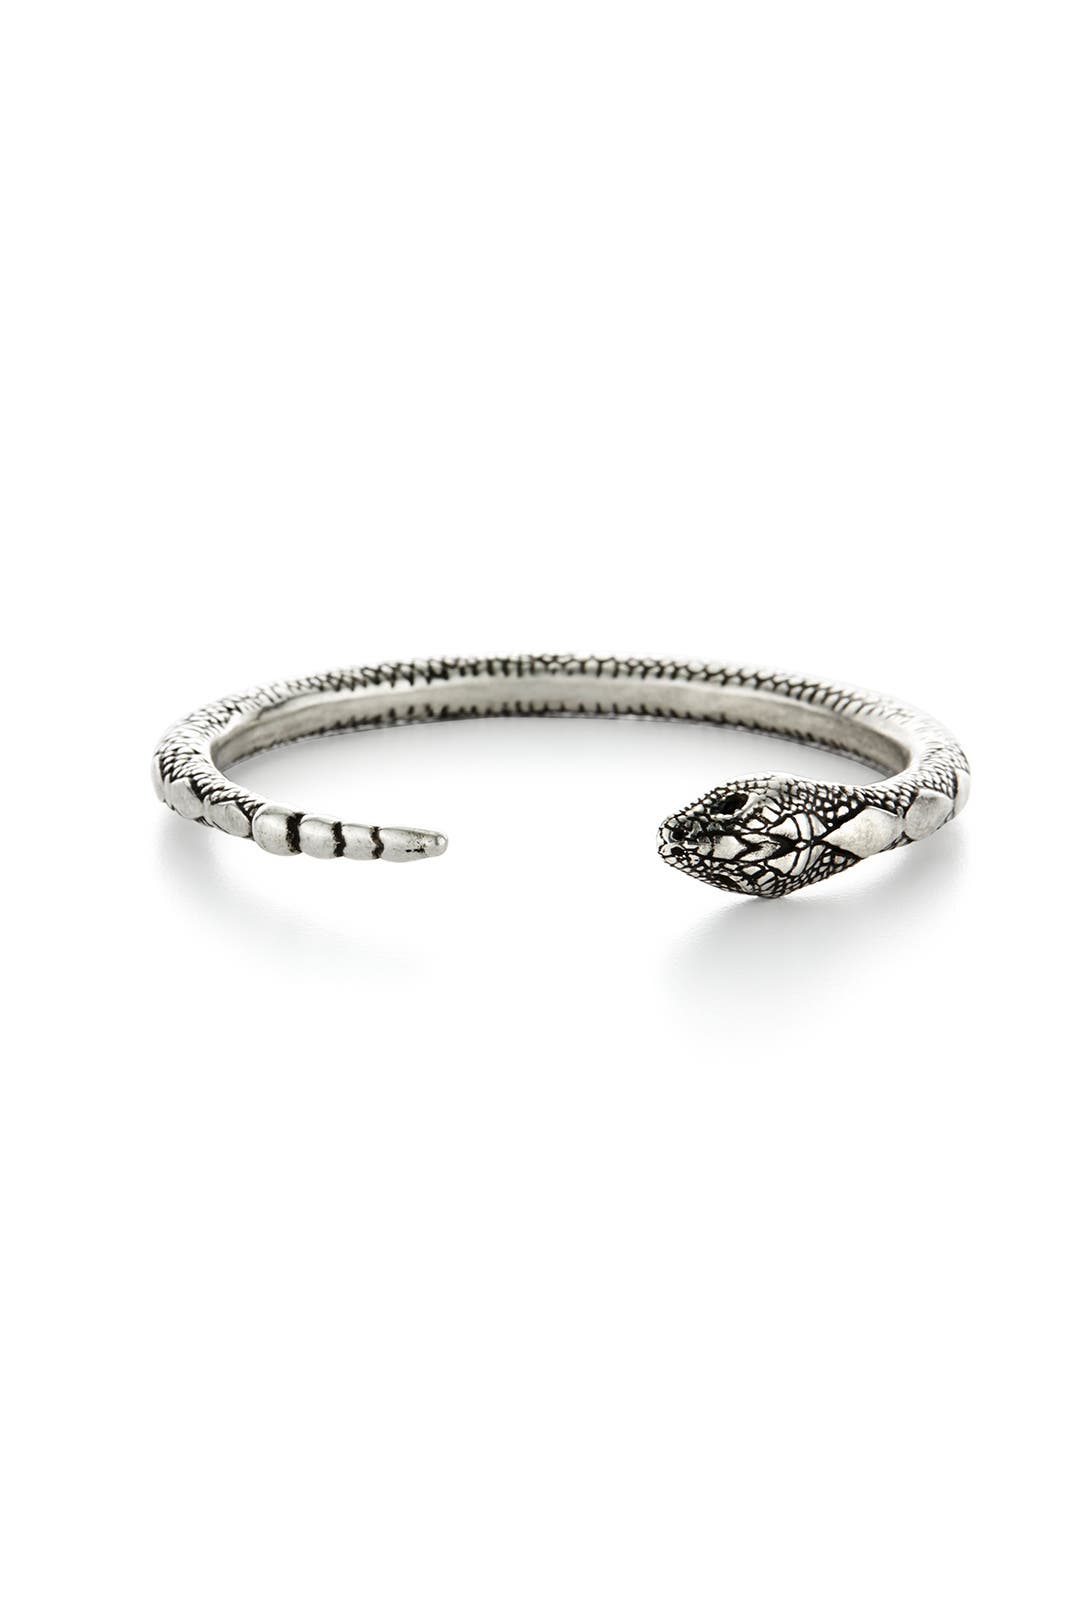 Silver Serpent Bangle by Pamela Love